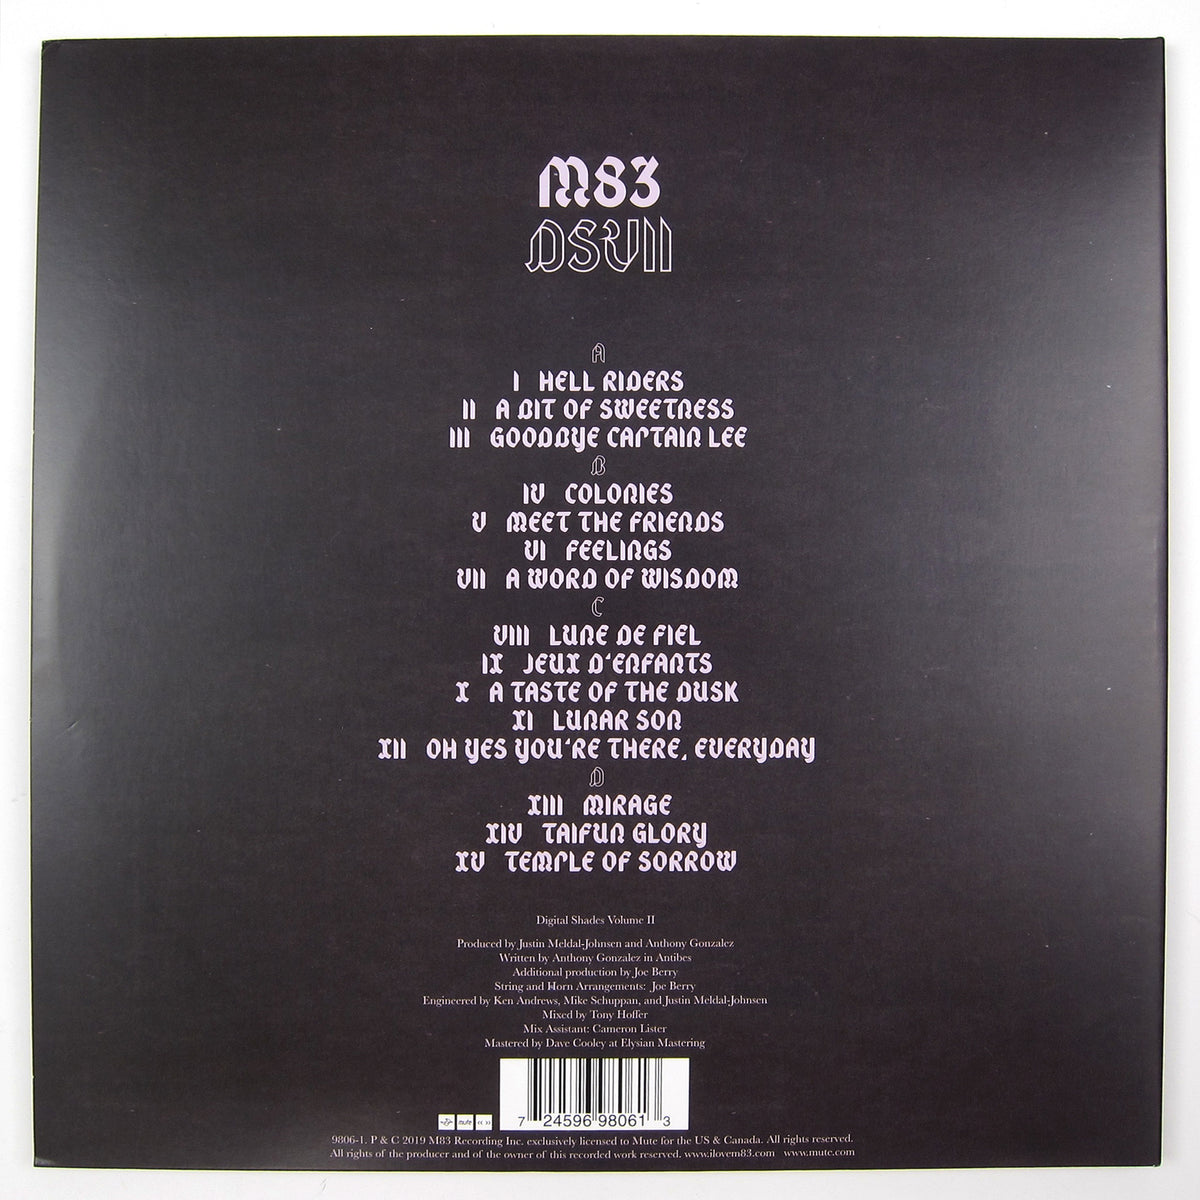 M83: DSVII - Digital Shades Vol.2 (Colored Vinyl) Vinyl 2LP